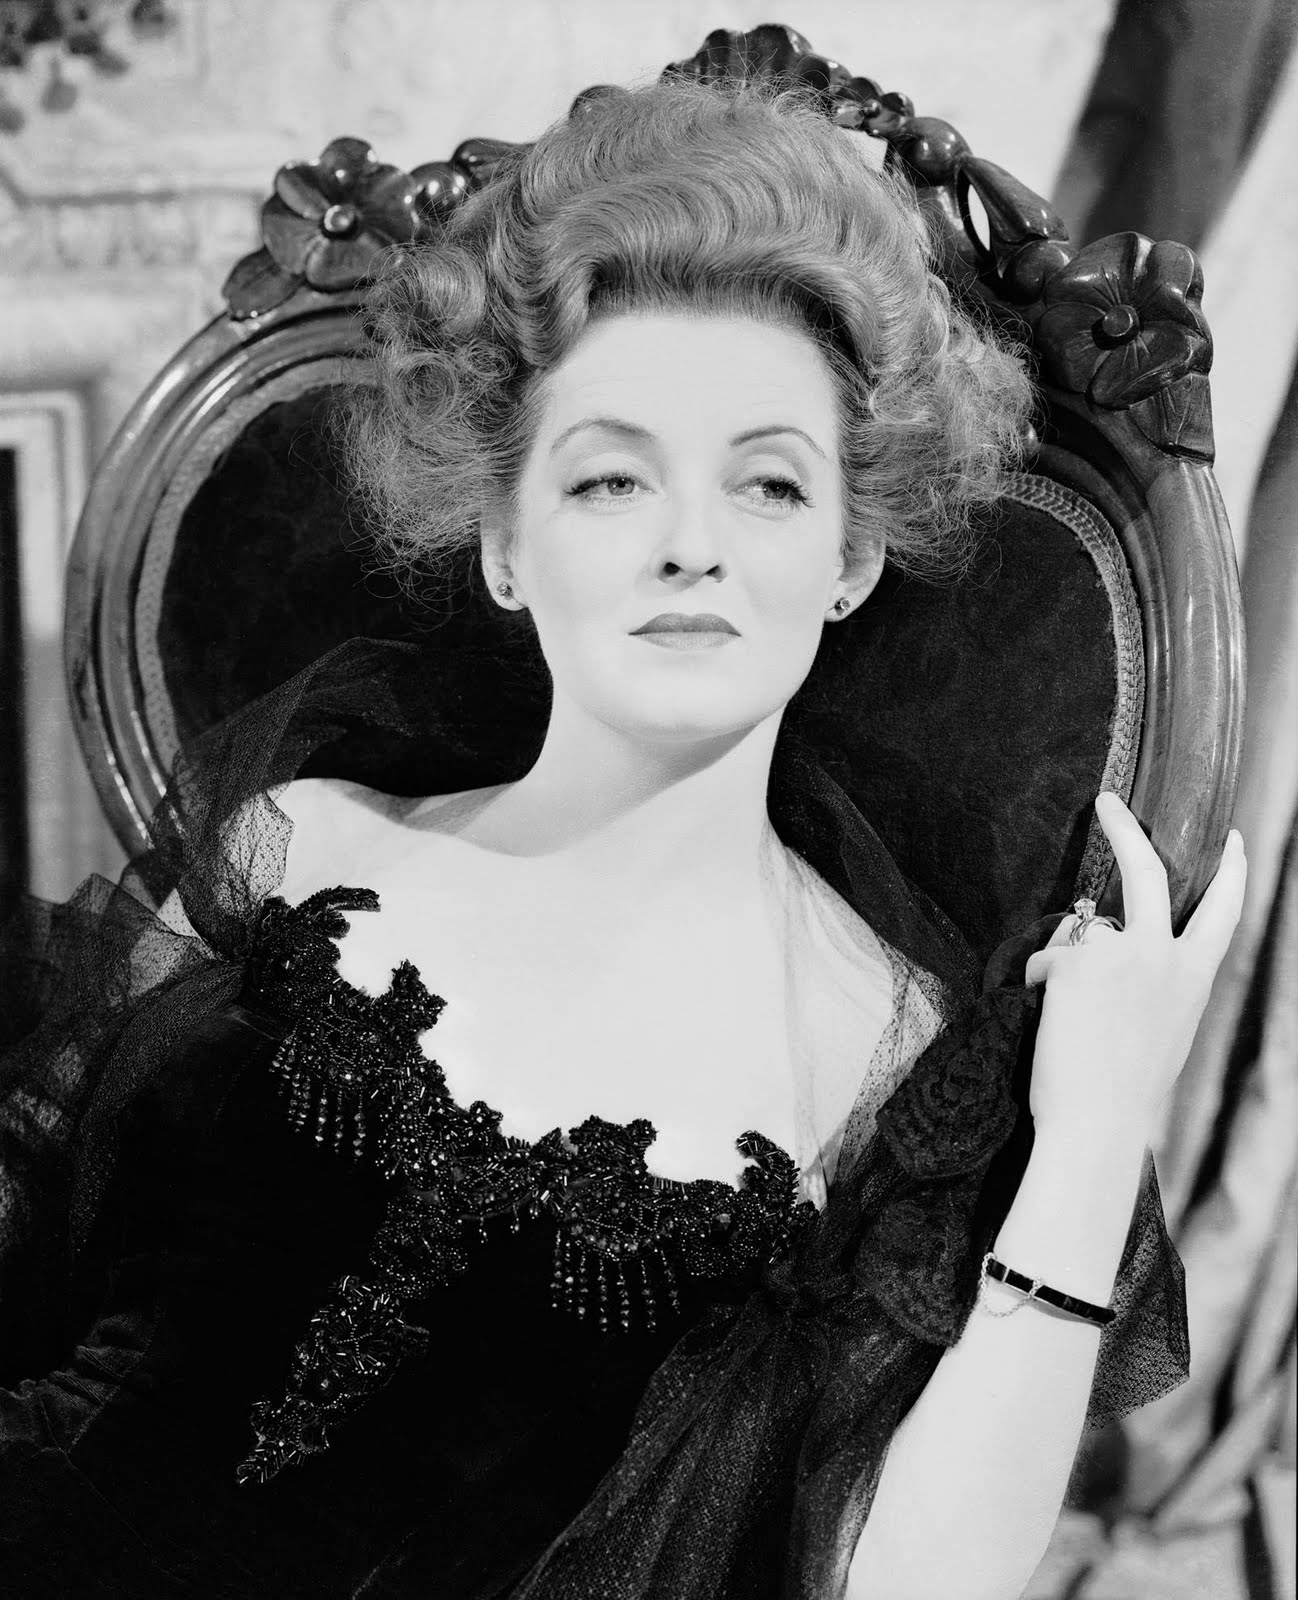 Bette Davis as the villainous